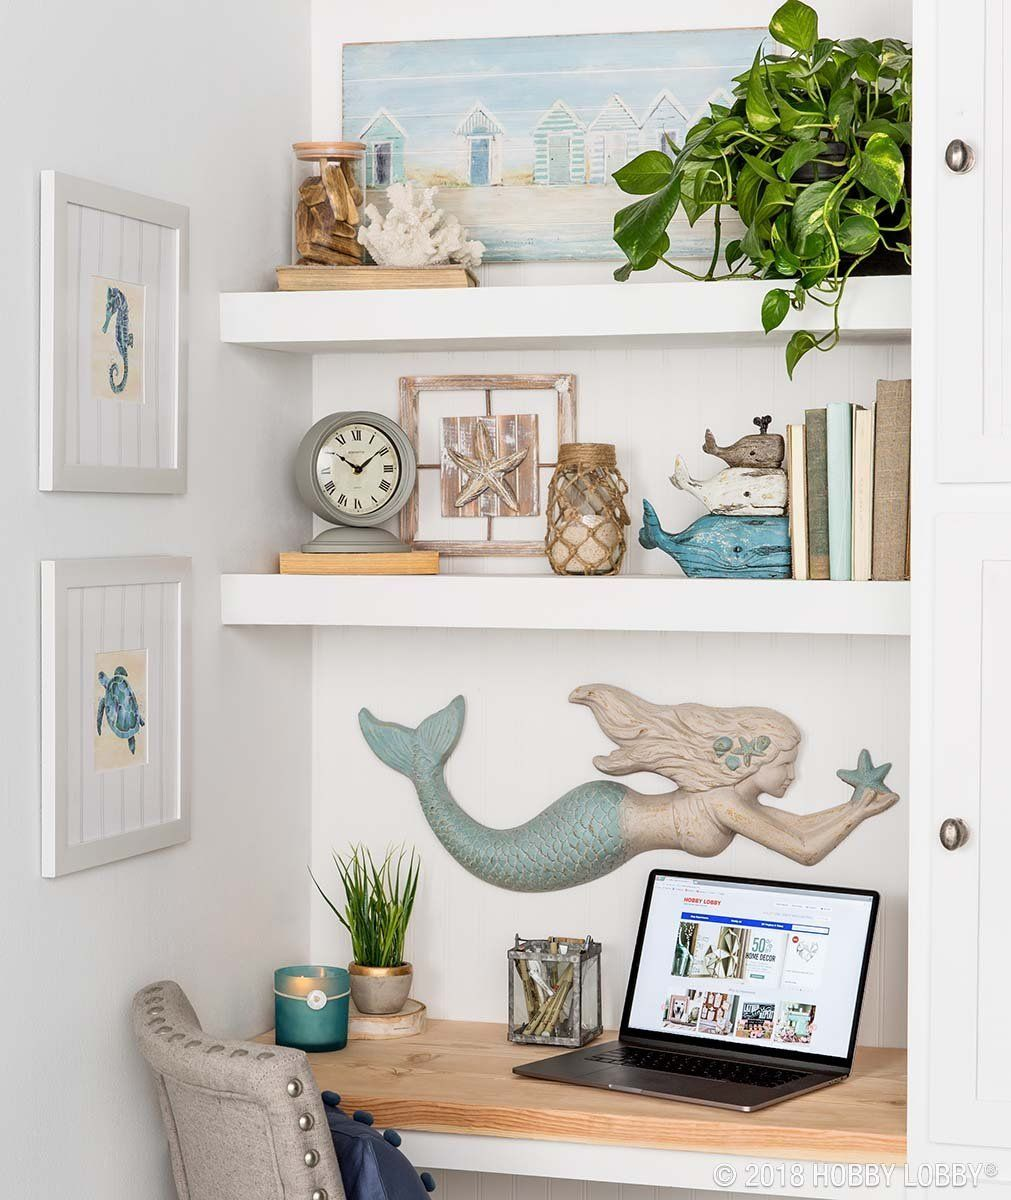 Deco Ambiance Bord De Mer bring the ambiance of the ocean into your home with nautical